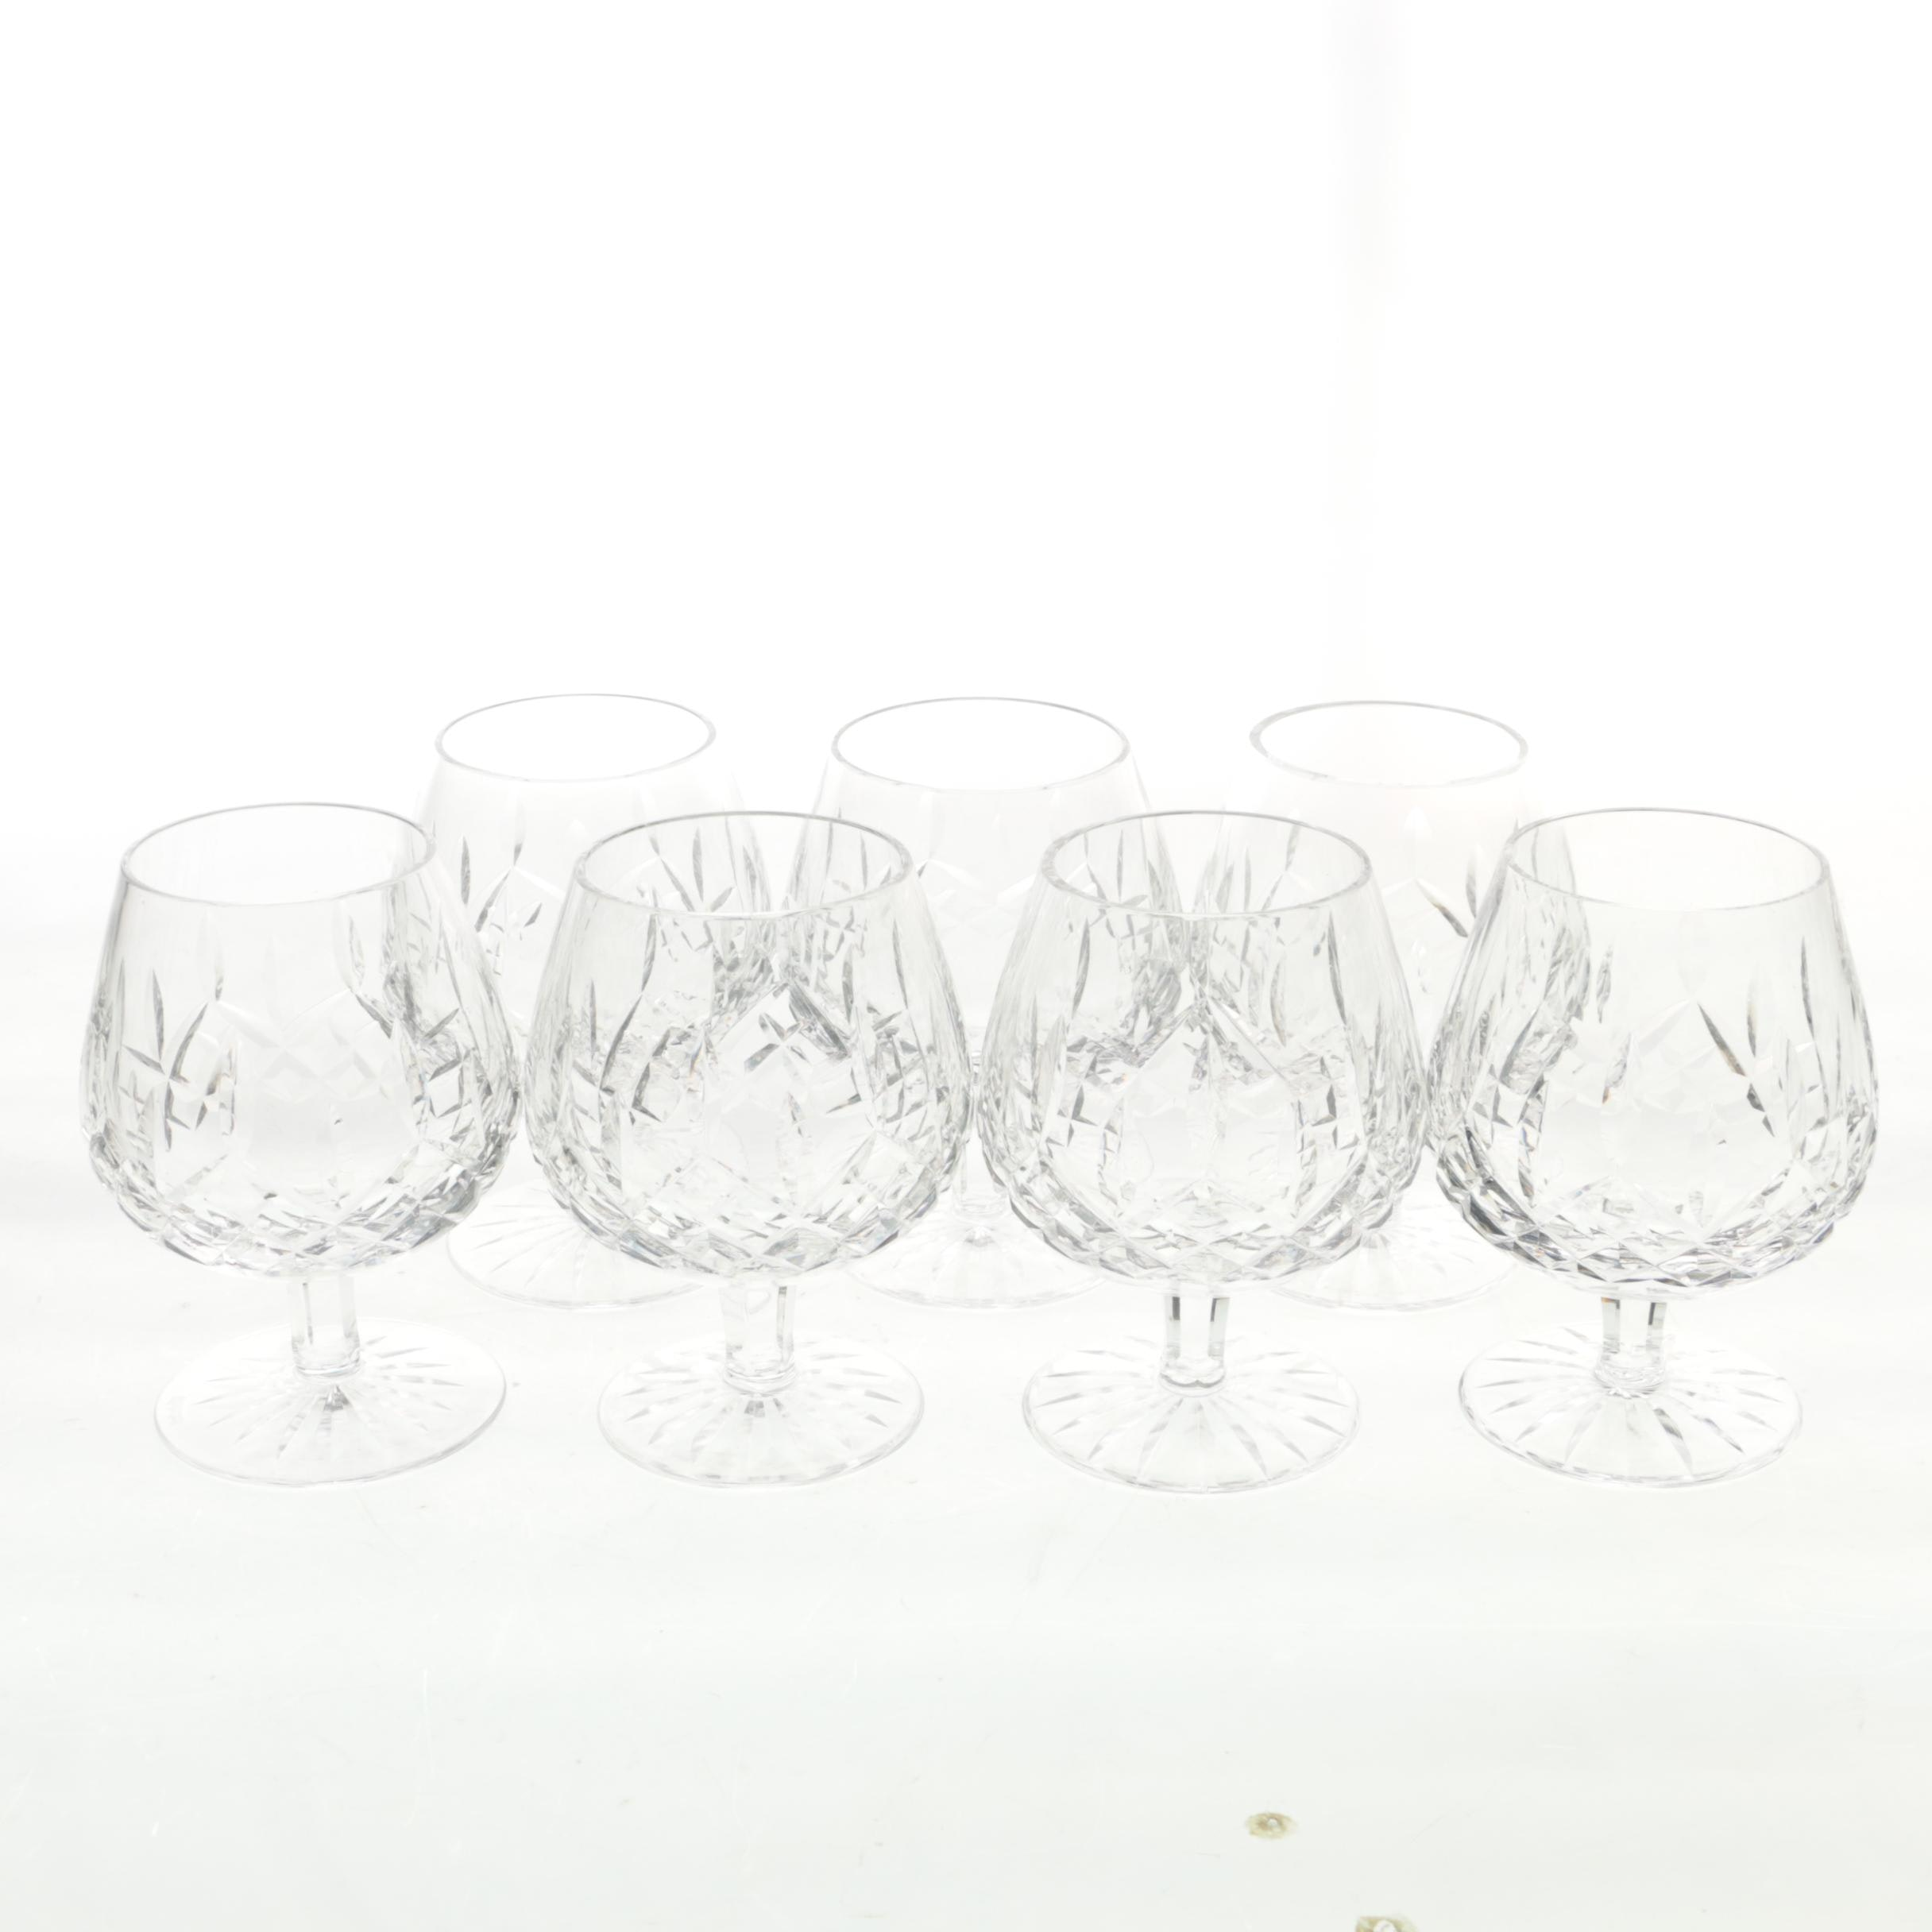 Waterford Crystal 'Lismore' Brandy Snifters